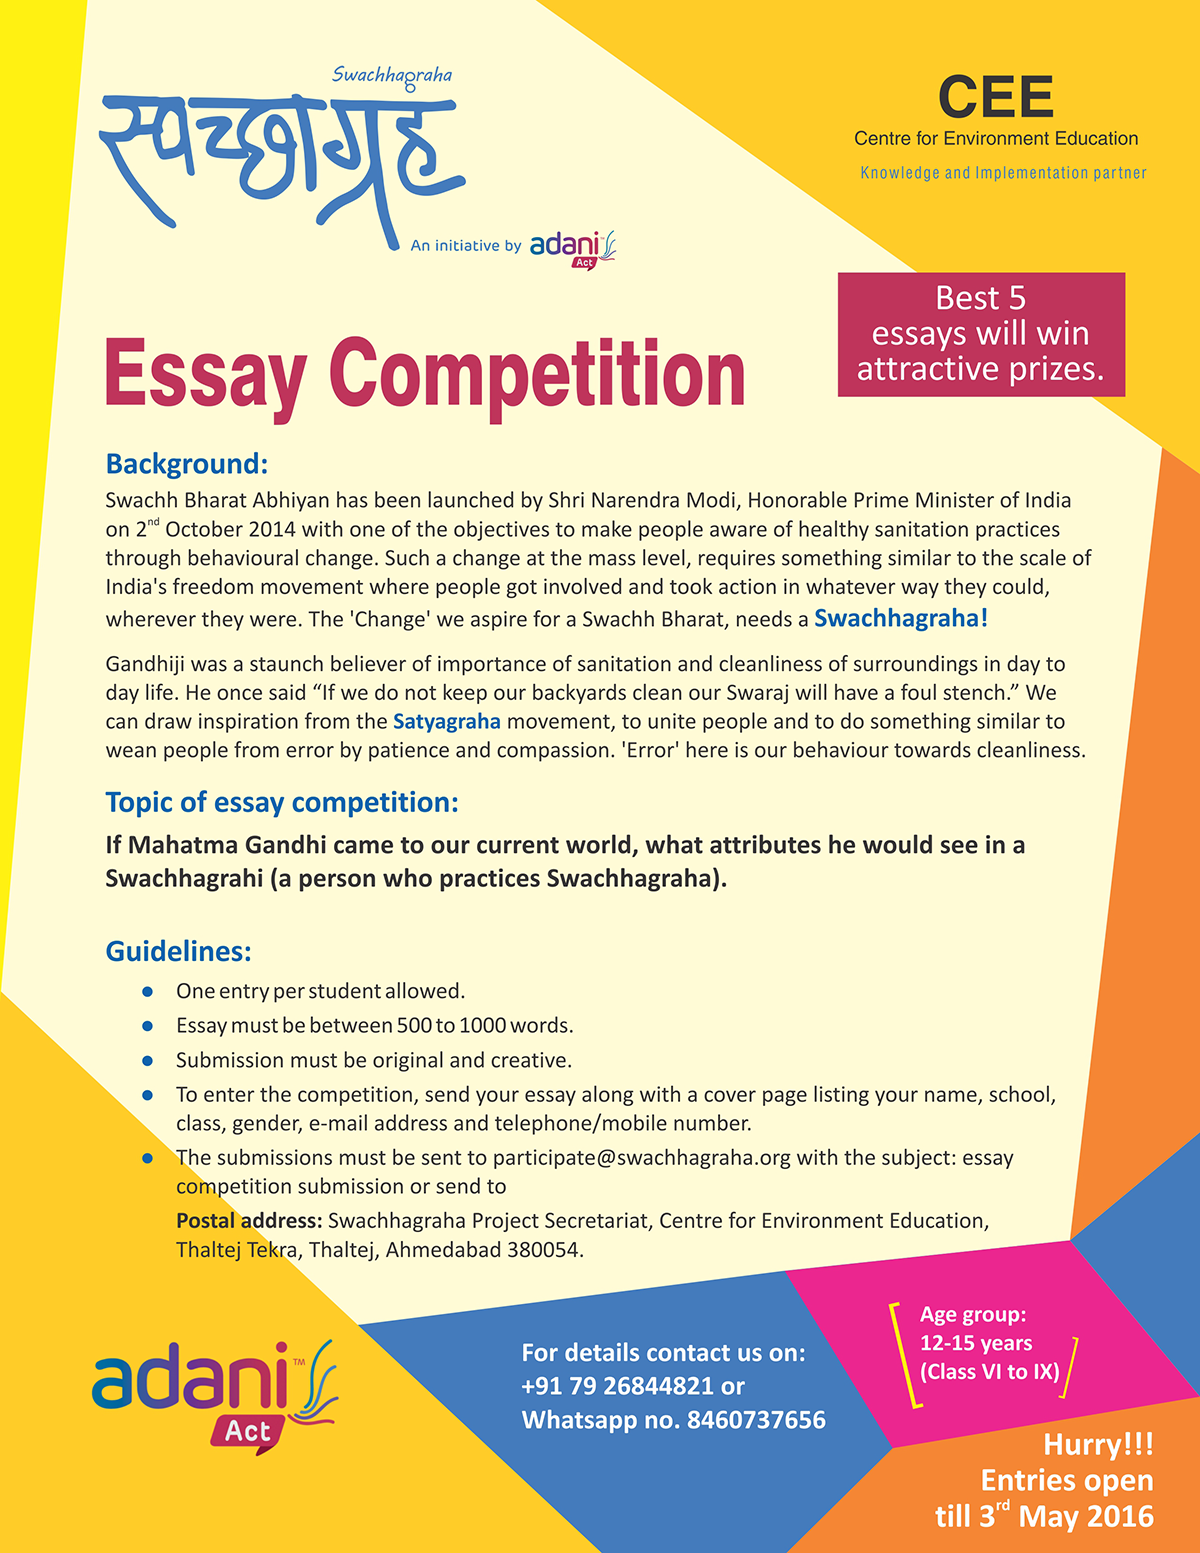 011 20180129171946essay20competition Essay About Cleanliness In School Phenomenal On Toilets Persuasive Full